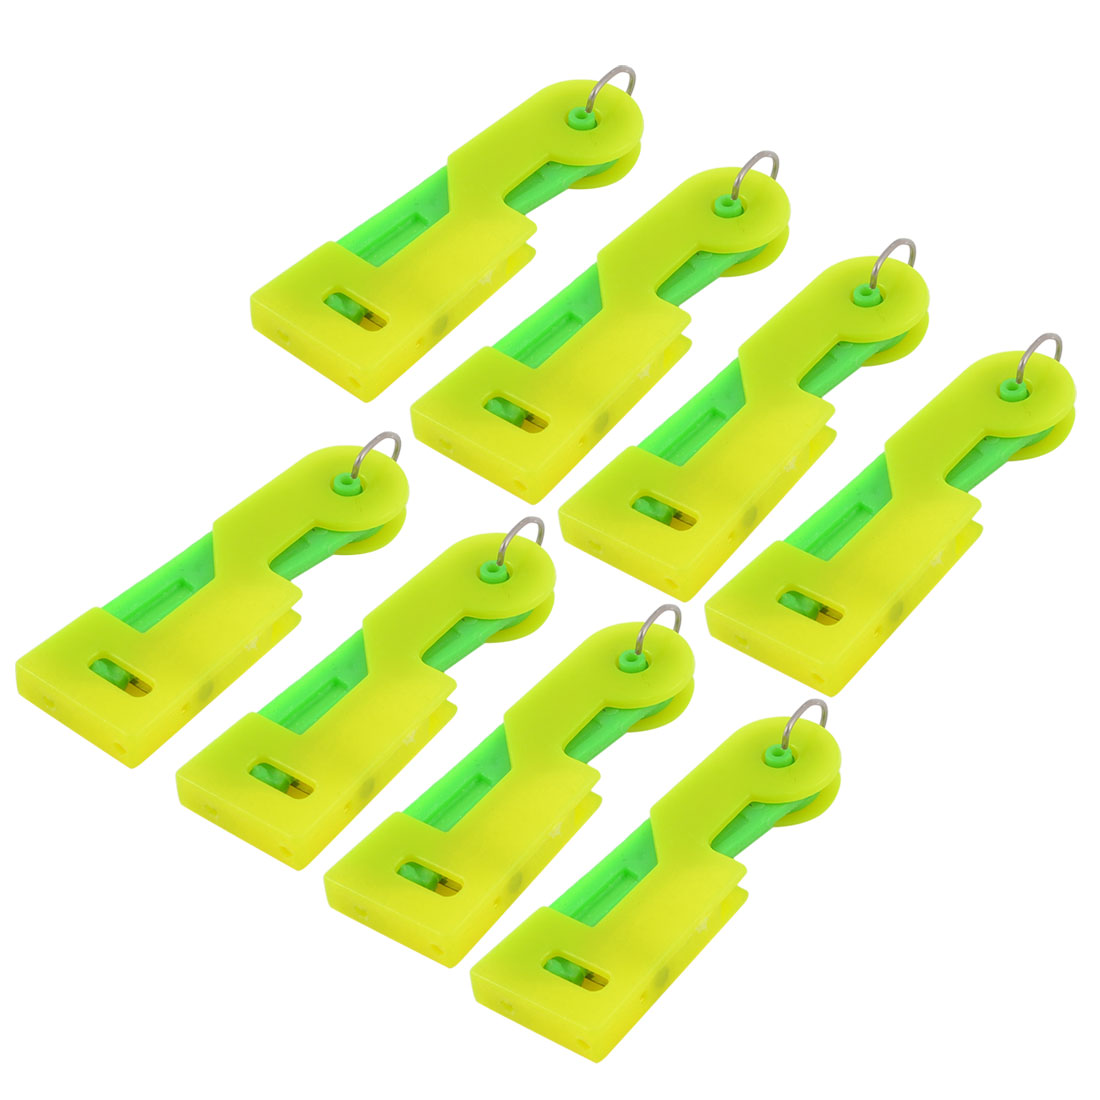 Household Plastic Press Button Yellow Green Sewing Tool Needle Threader 8pcs